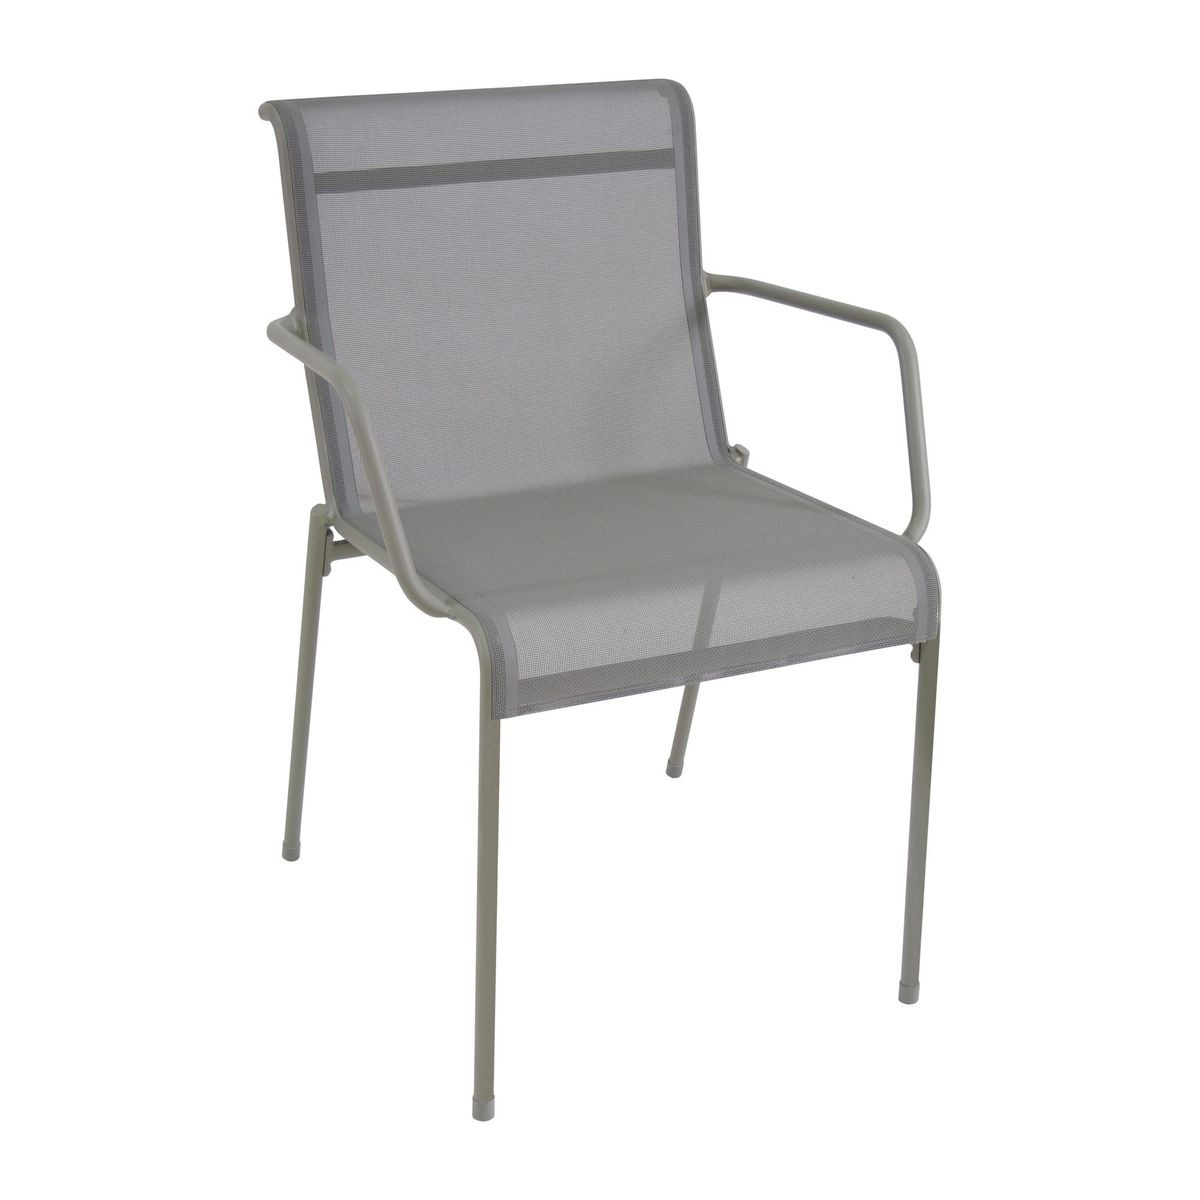 Kira Armchair 684 from Emu, designed by Christophe Pillet